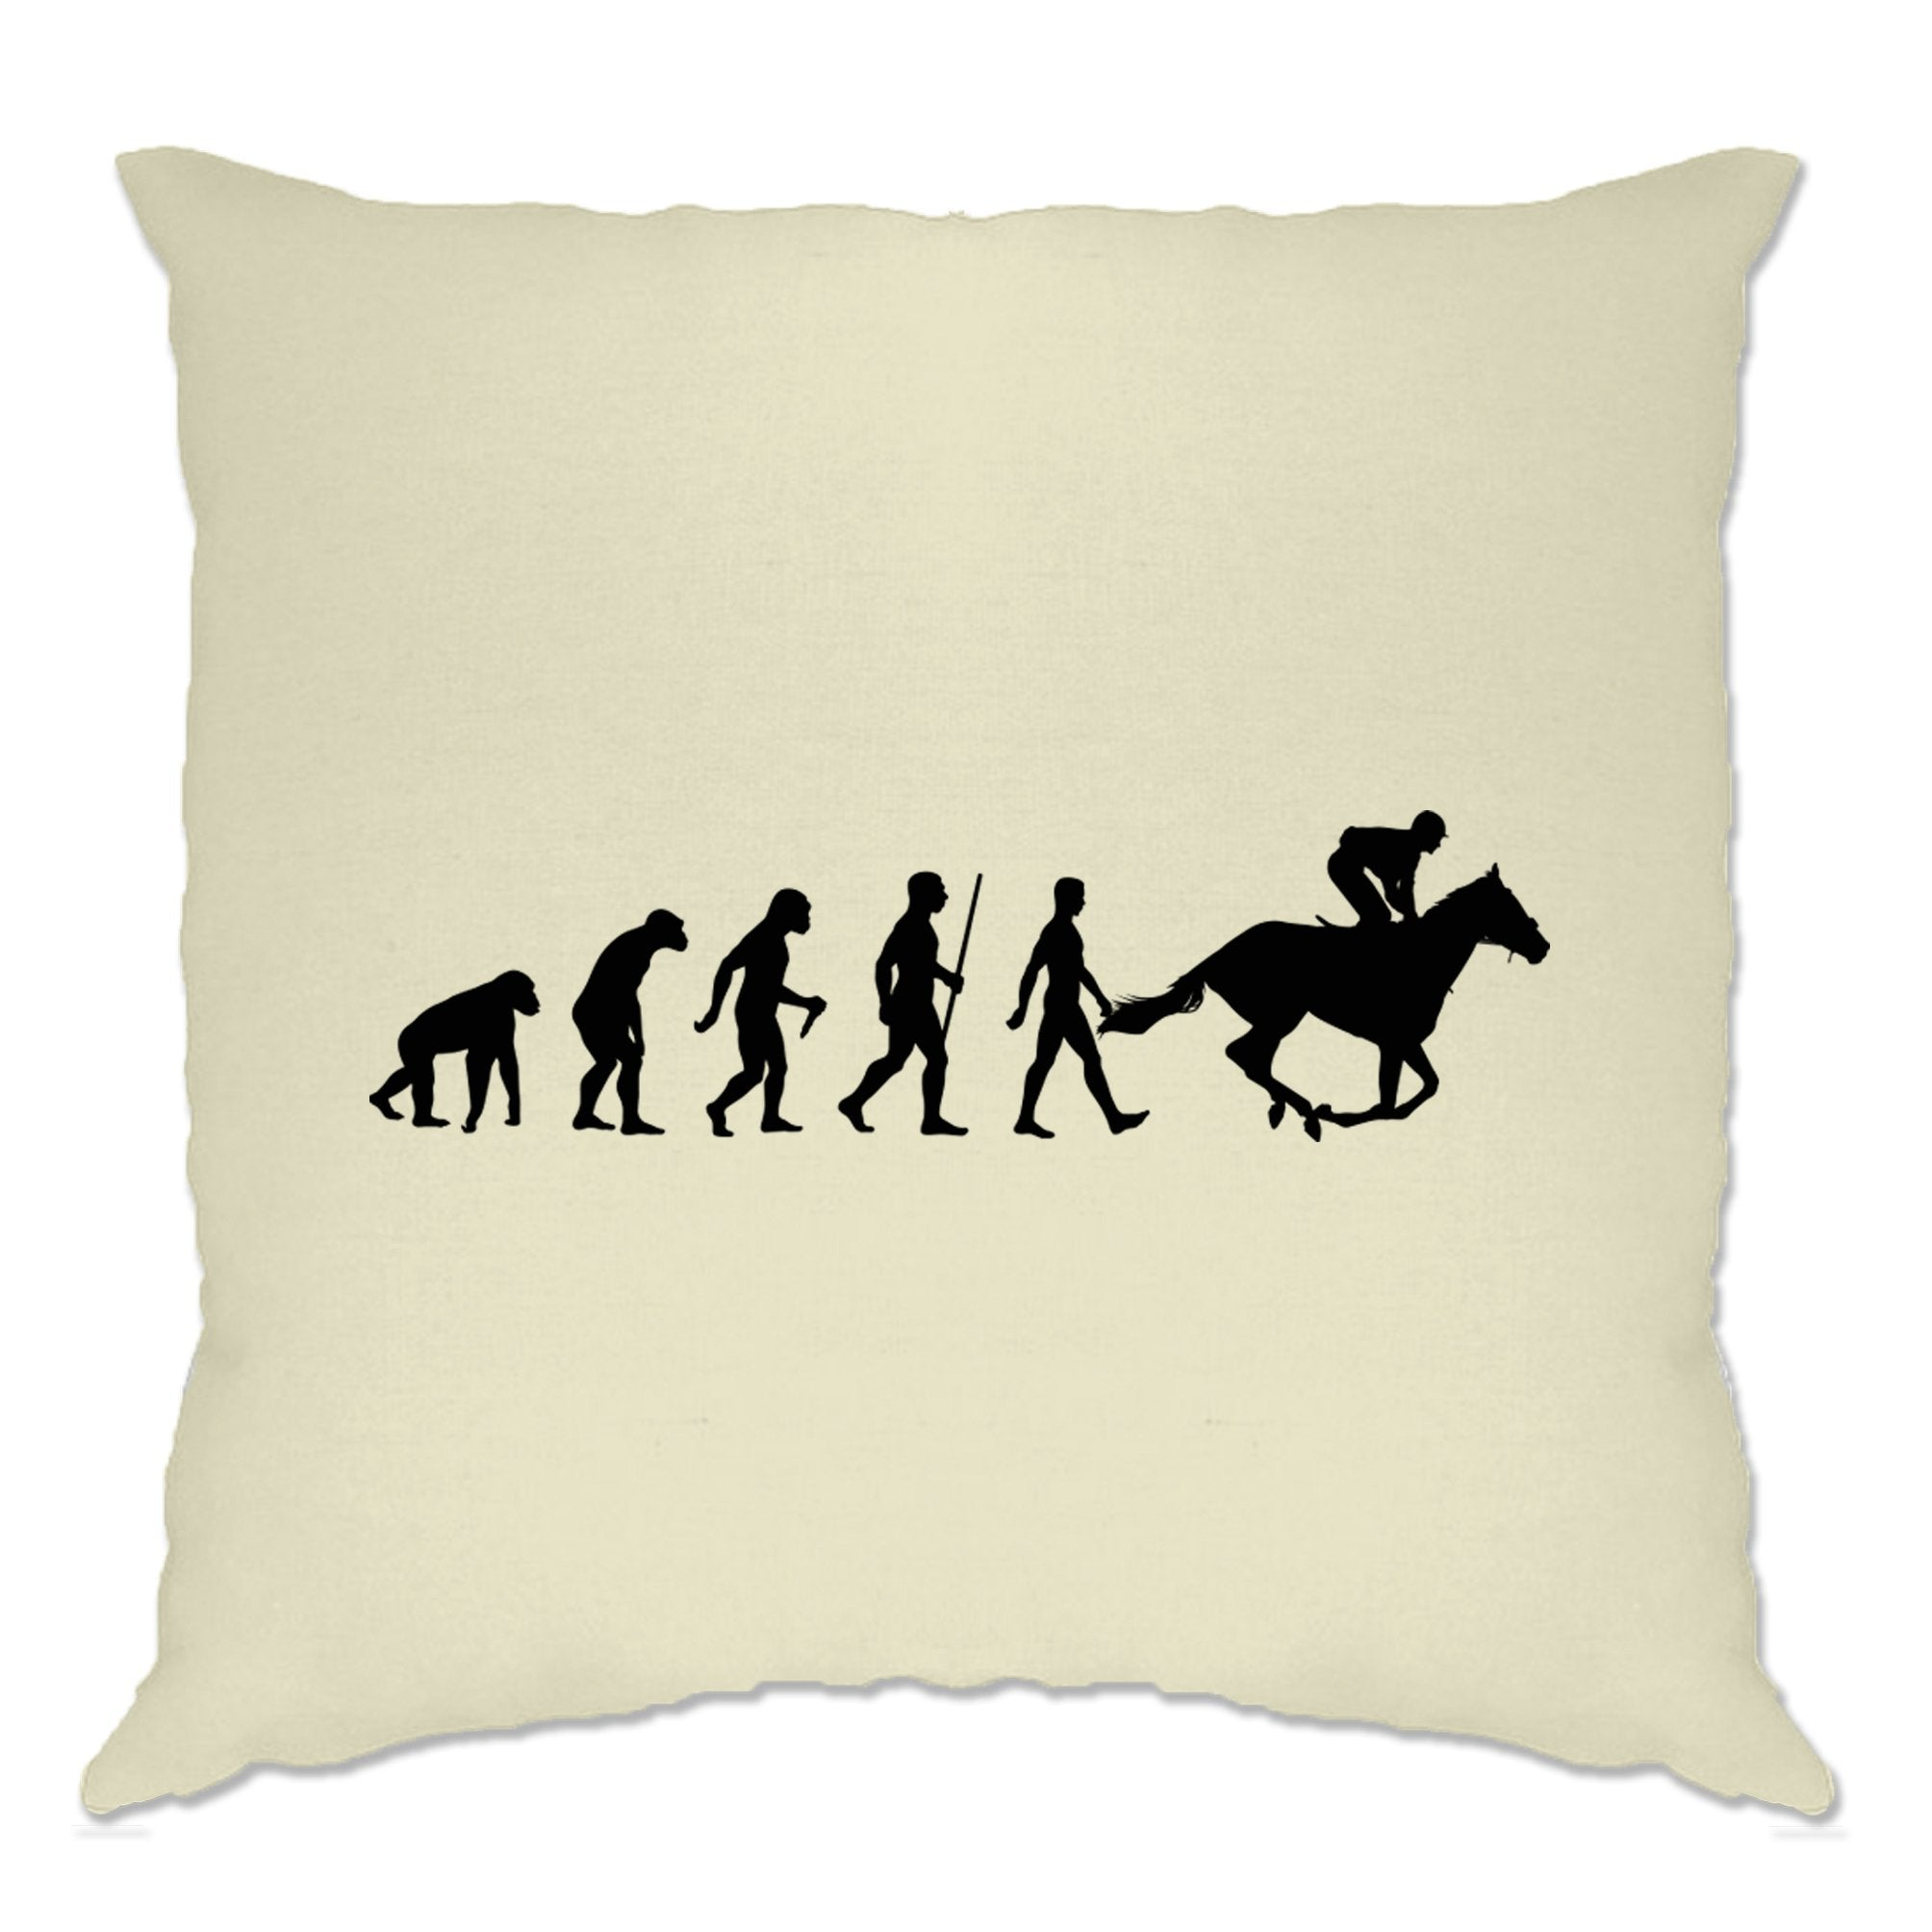 Sport Cushion Cover Evolution Of Horse Riding Equestrian